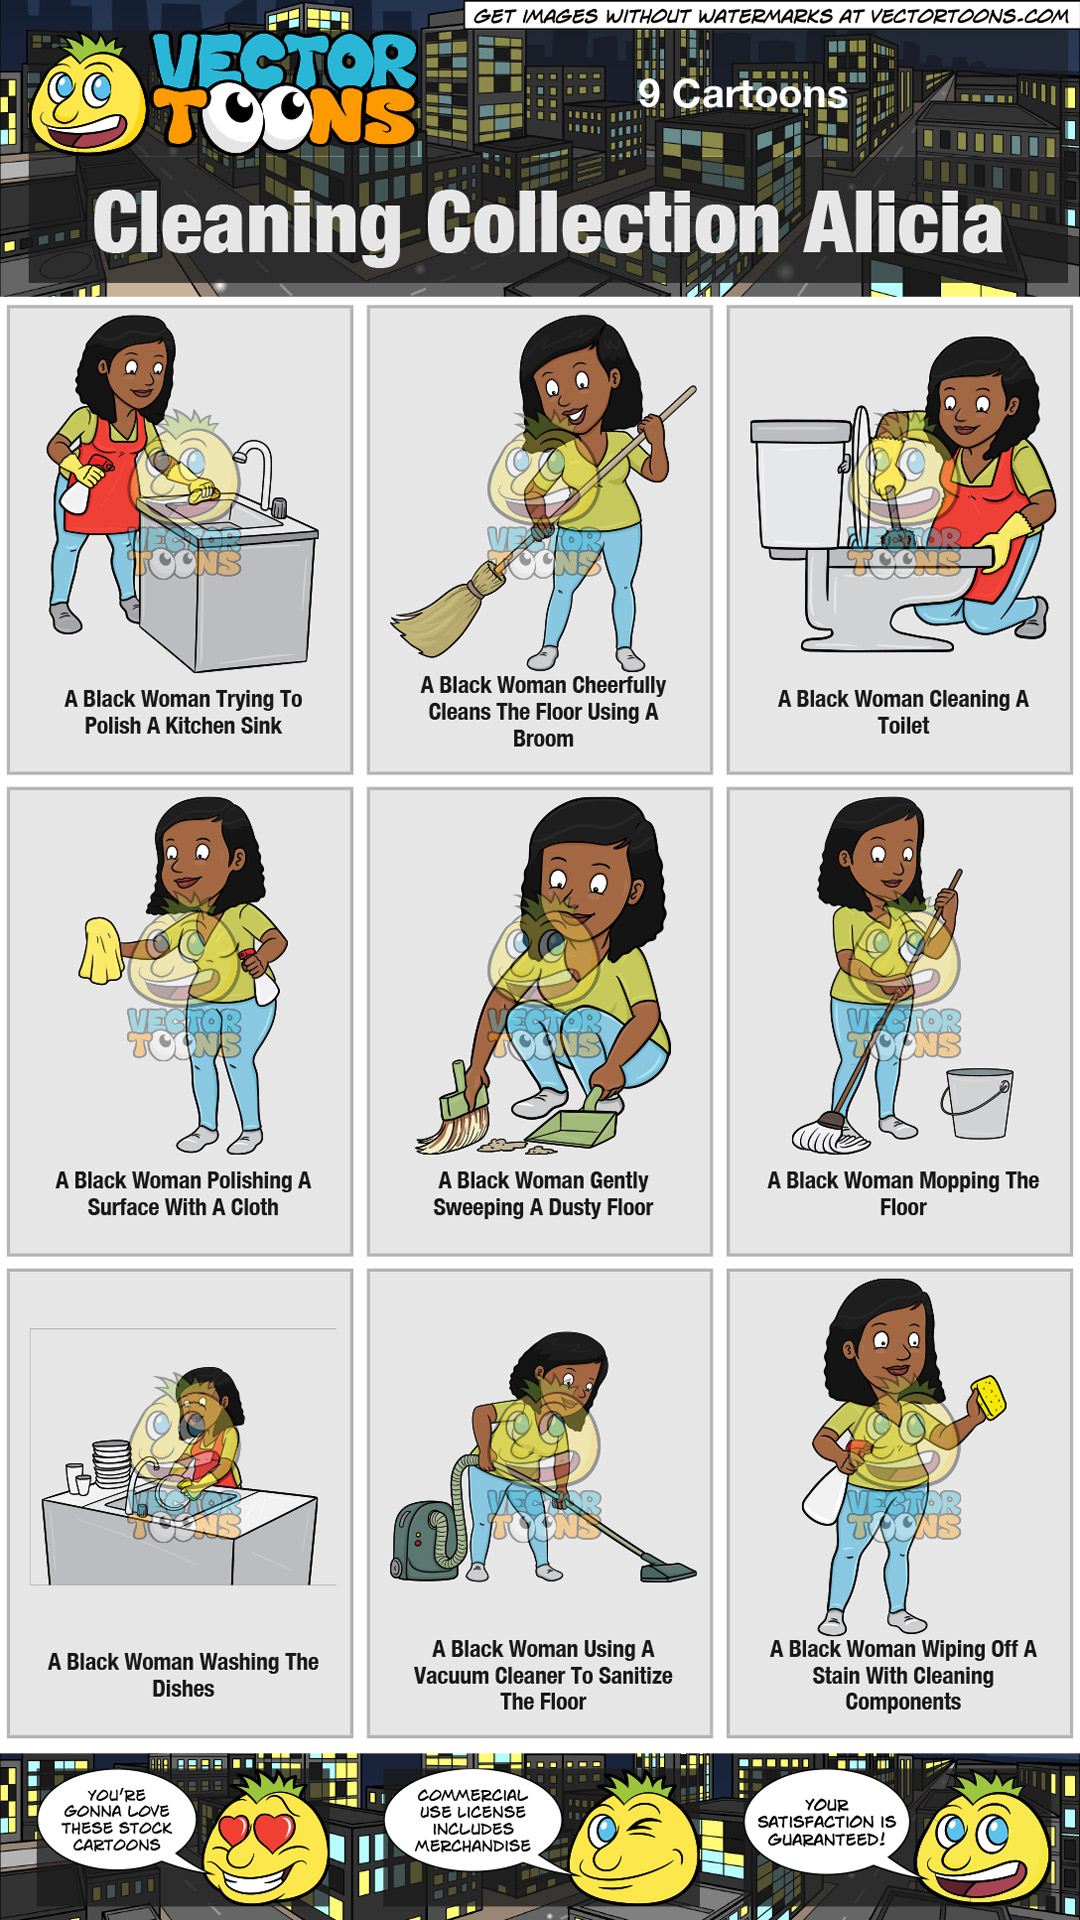 Cleaning Collection Alicia – Clipart by Vector Toons on british cartoons, spray in shoes cartoons, asian cartoons, european cartoons, urdu cartoons, russian cartoons, ukrainian cartoons, conditioner cartoons, dutch cartoons, poland cartoons, turkish cartoons, work goal cartoons, japanese cartoons, korean cartoons, iranian cartoons, french cartoons, italian cartoons, nail salon funny cartoons, arabic cartoons, american cartoons,